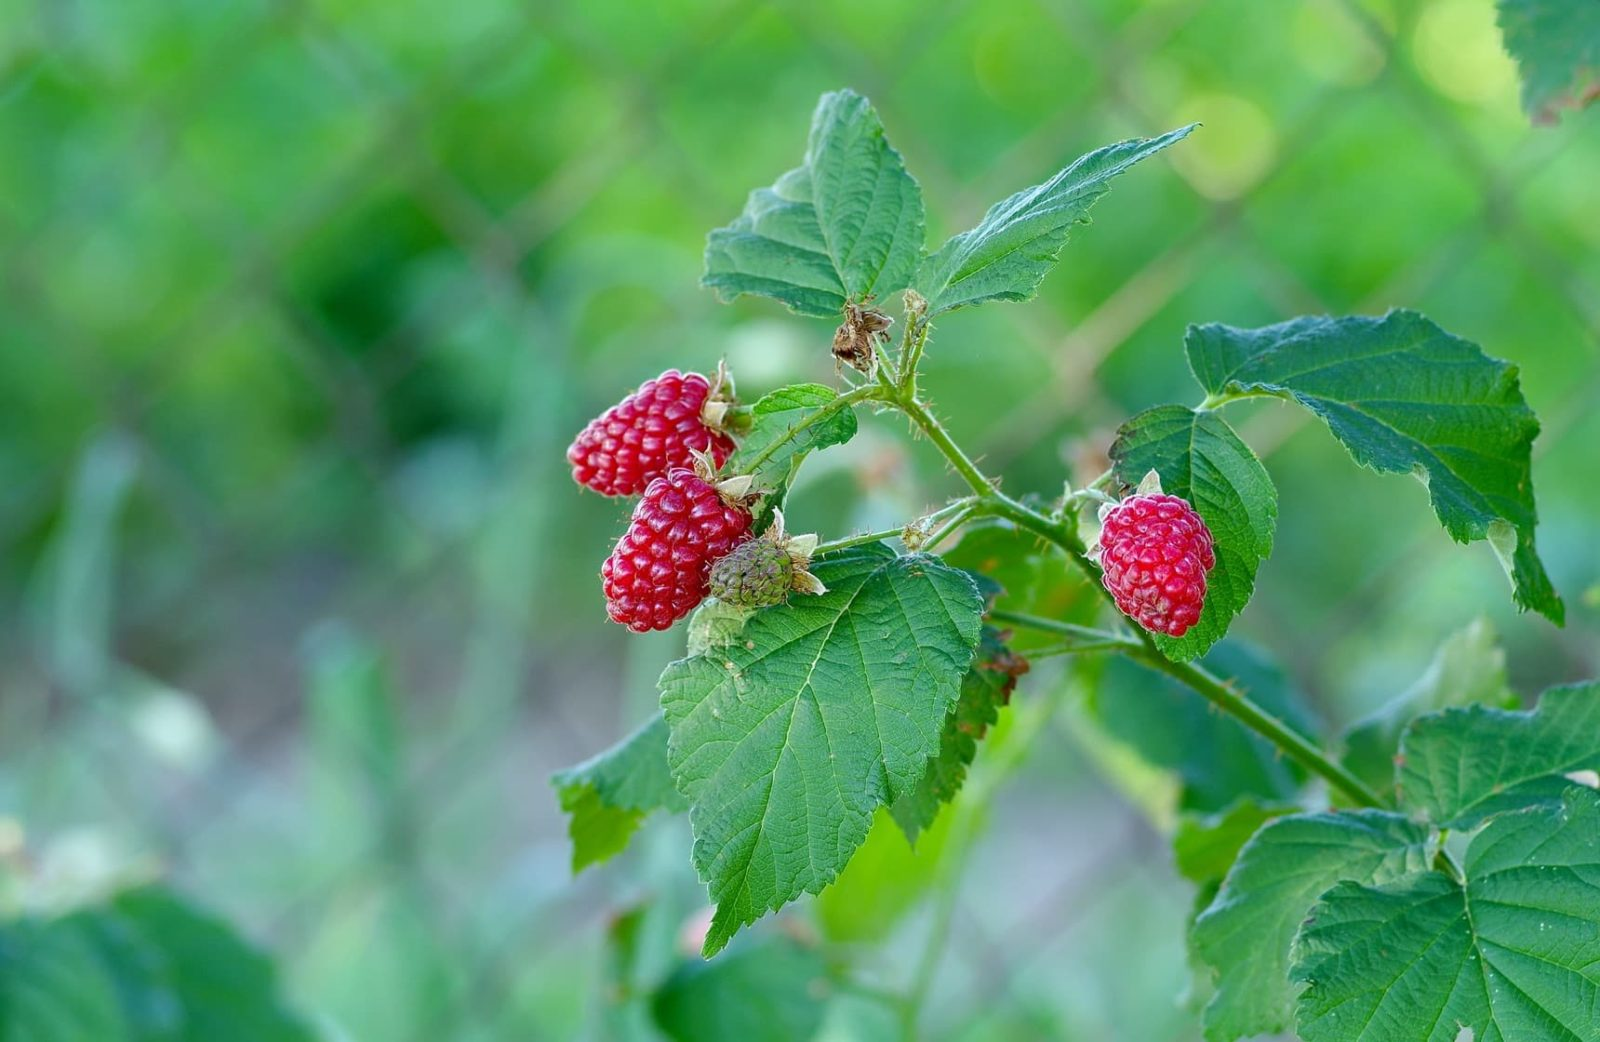 tayberry fruits on a branch